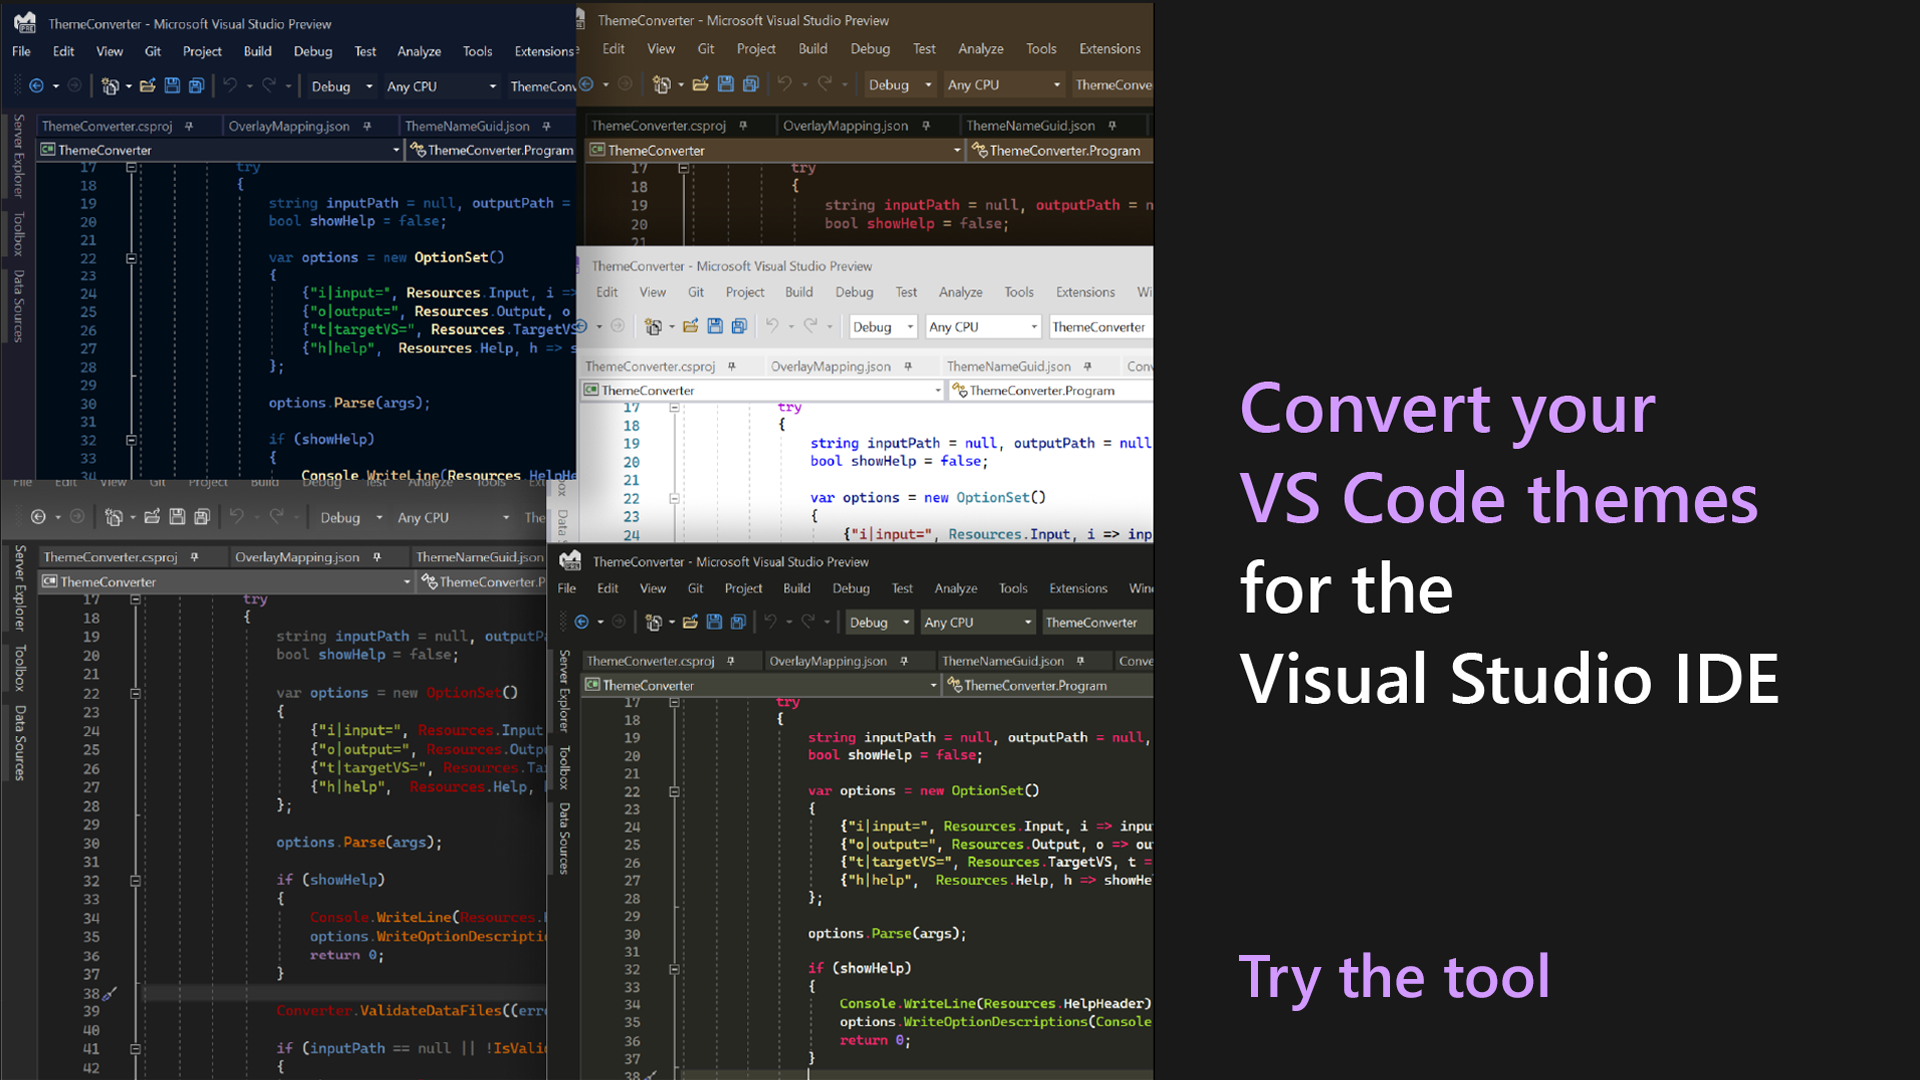 Convert VS Code Themes to Use in Visual Studio